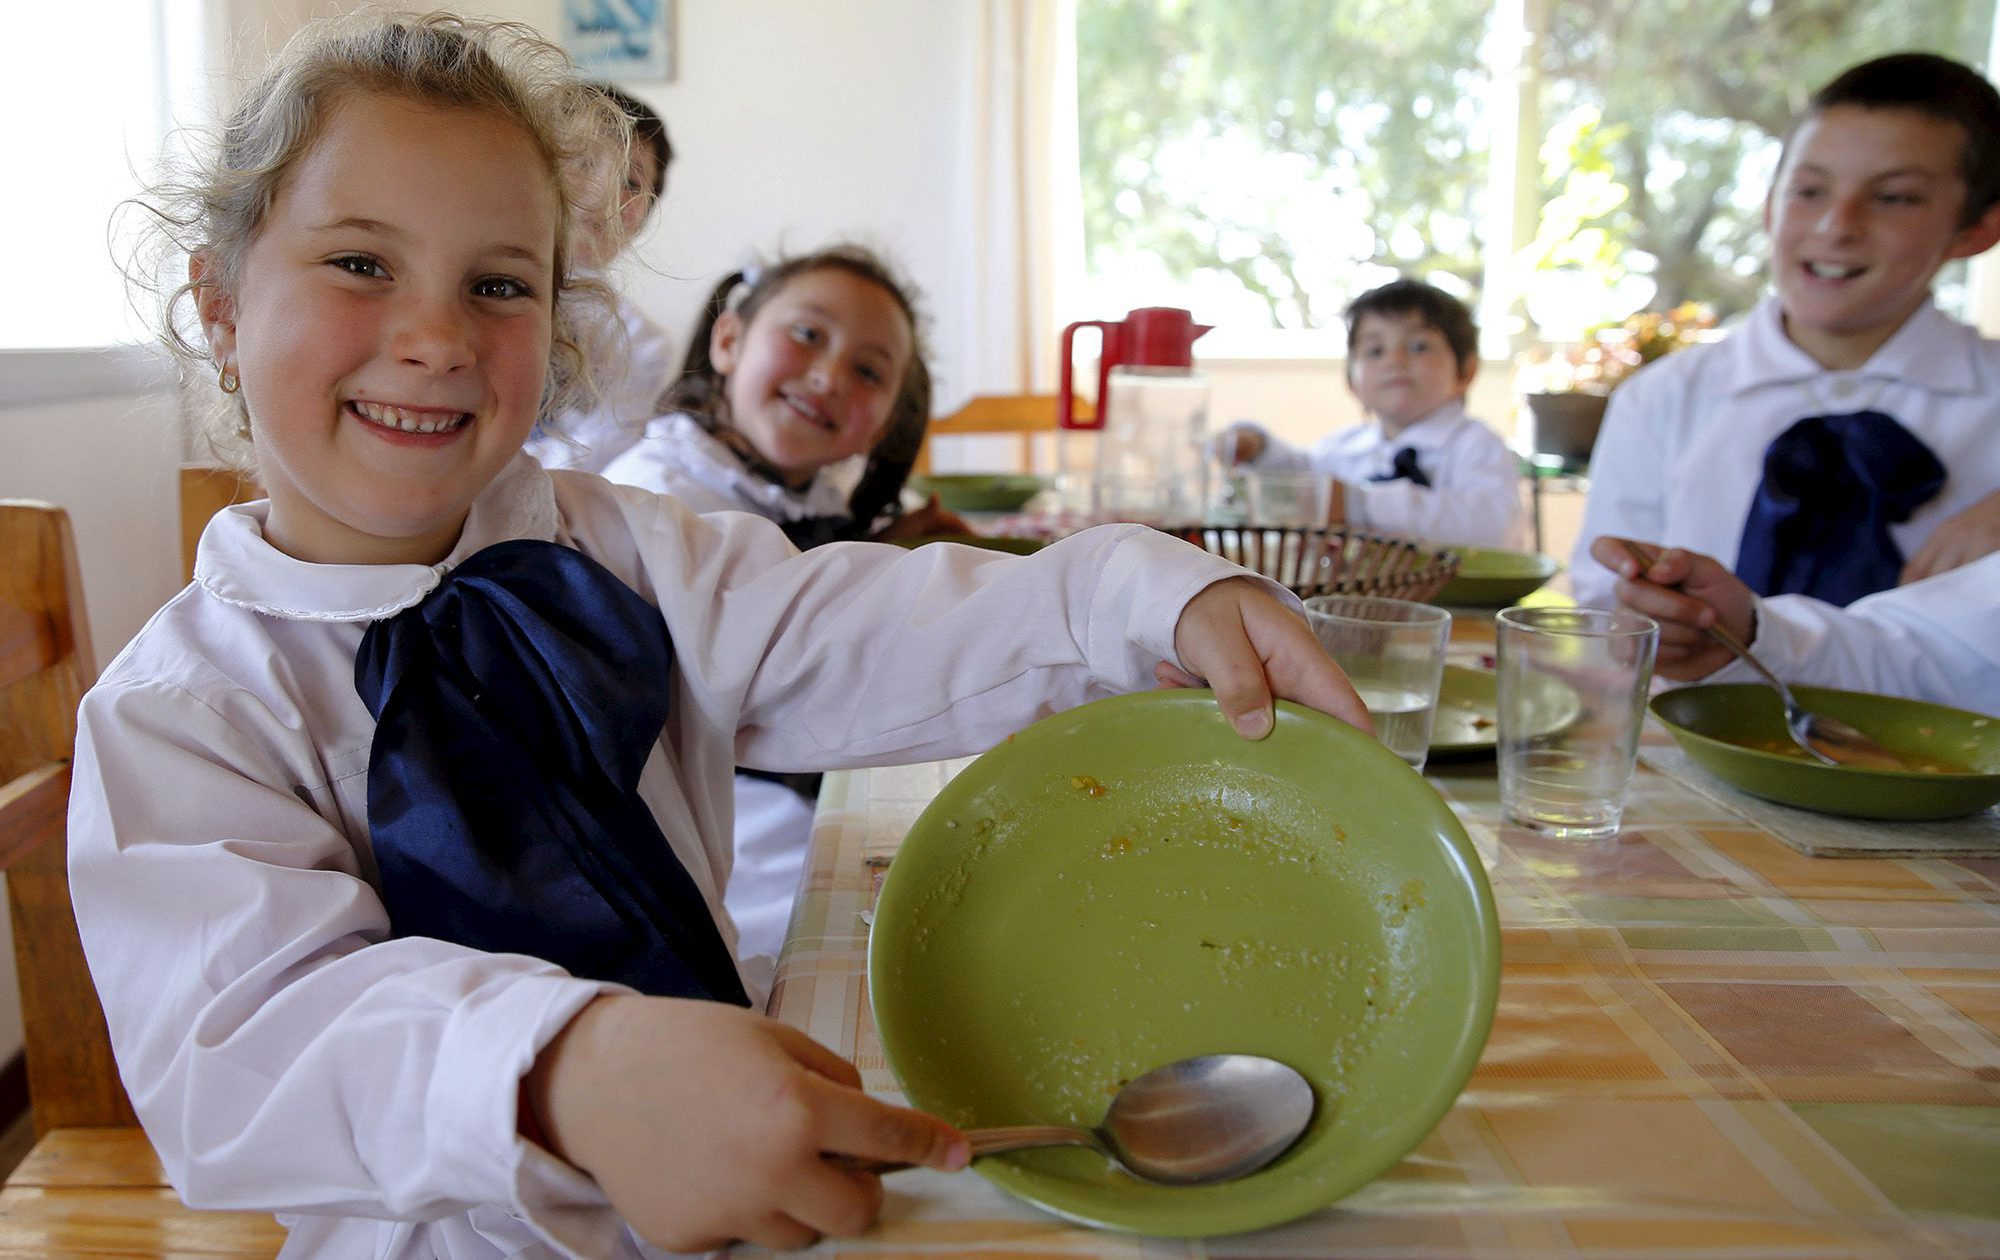 Students eat lunch that was prepared with vegetables grown by themselves at the Agustin Ferreira farm school near Minas city, in the northeast of Montevideo, September 15, 2015. The school has 12 students aged 4 to 11, with only one teacher, and incorporates activities such as milking a cow, planting vegetables and cooking to improve the education of the children. REUTERS/Andres Stapff - RTS1AVT